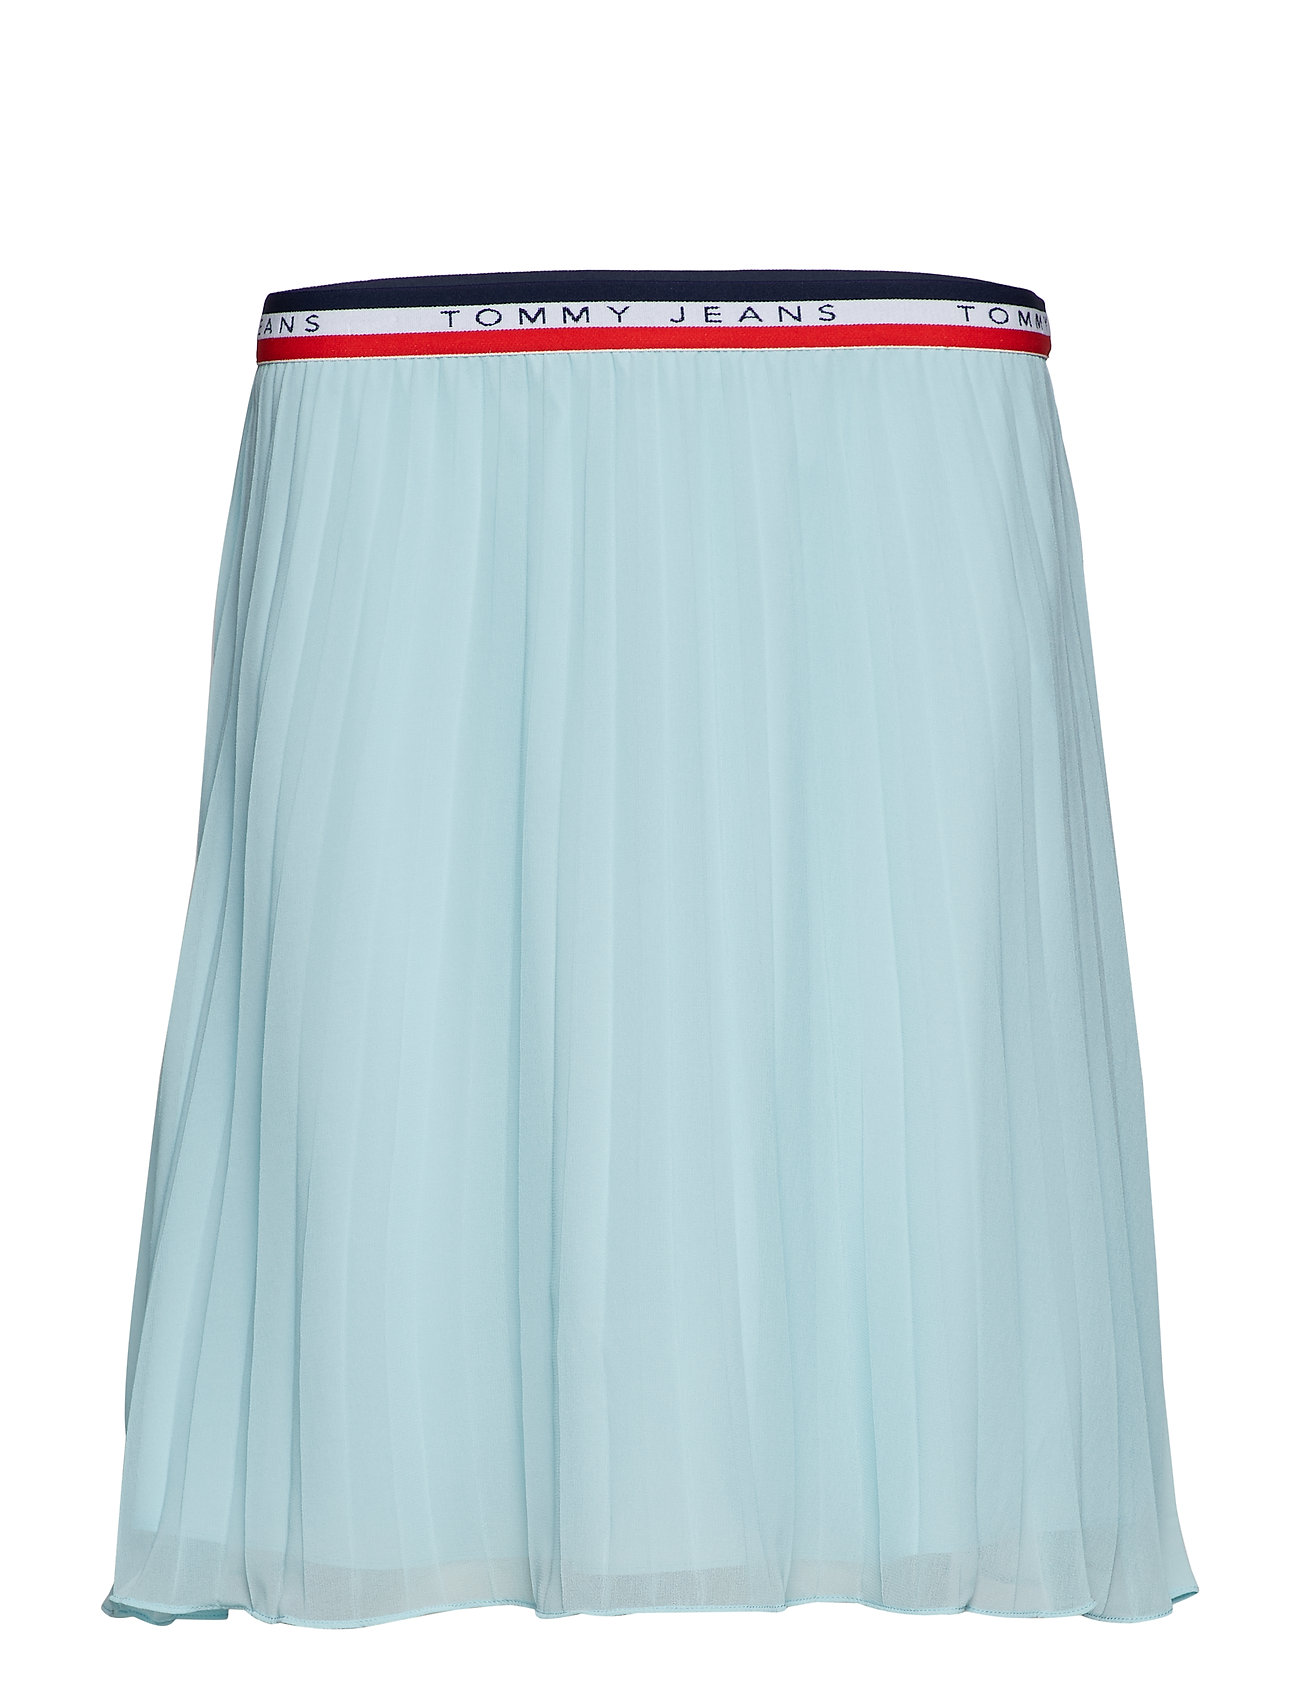 Tommy Jeans TJW PLEATED SKIRT - CANAL BLUE